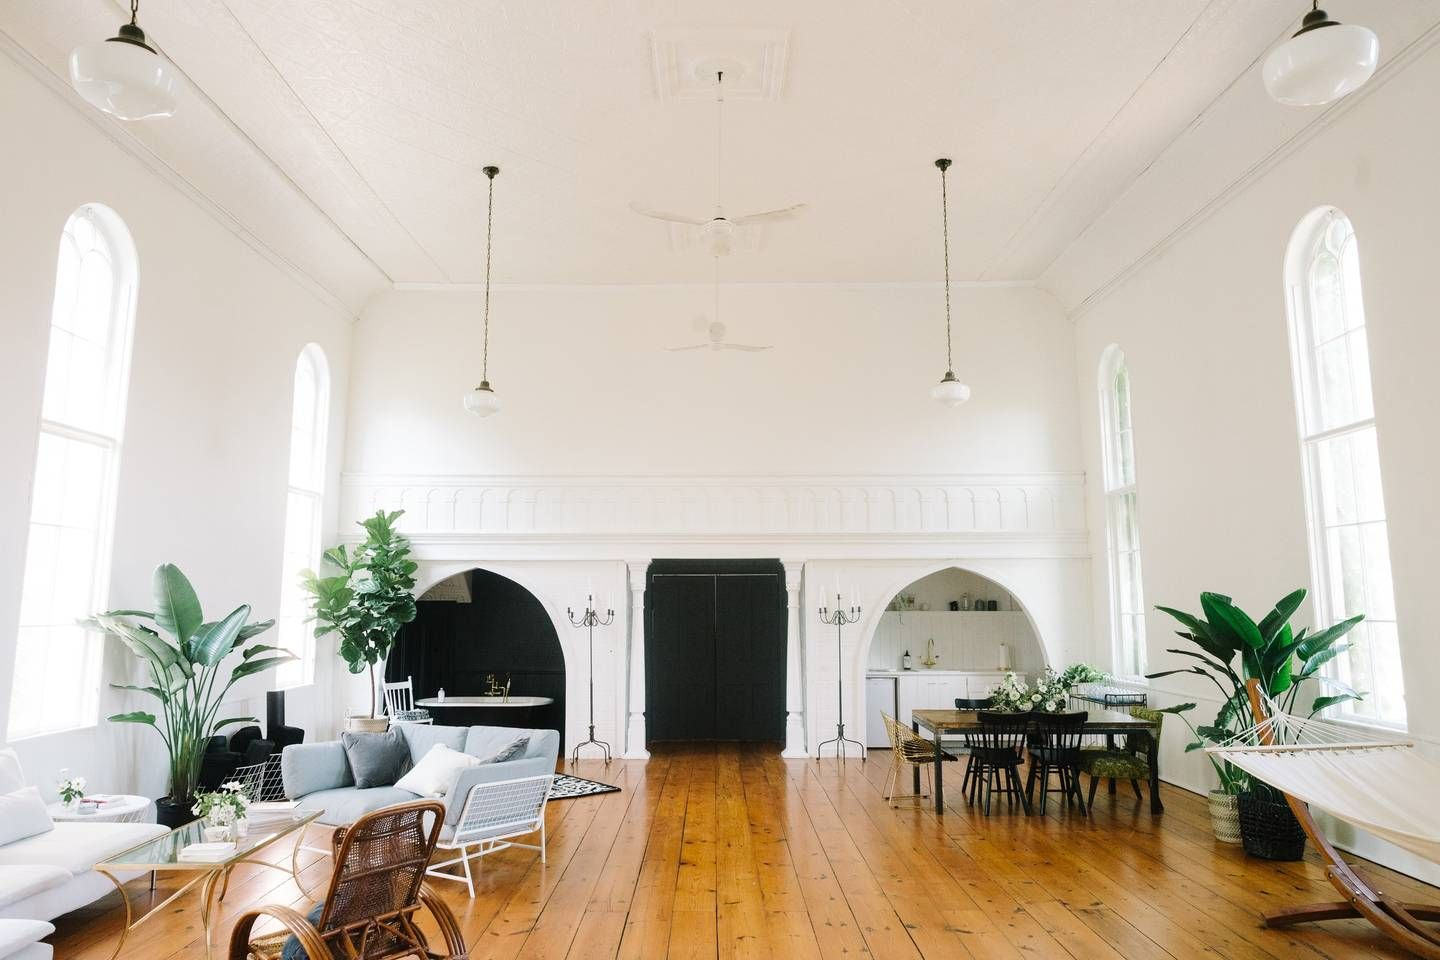 Sanctuary In The County 1800s Church Houses For Rent In Prince Edward Renting A House Church Decor Living Room Interior